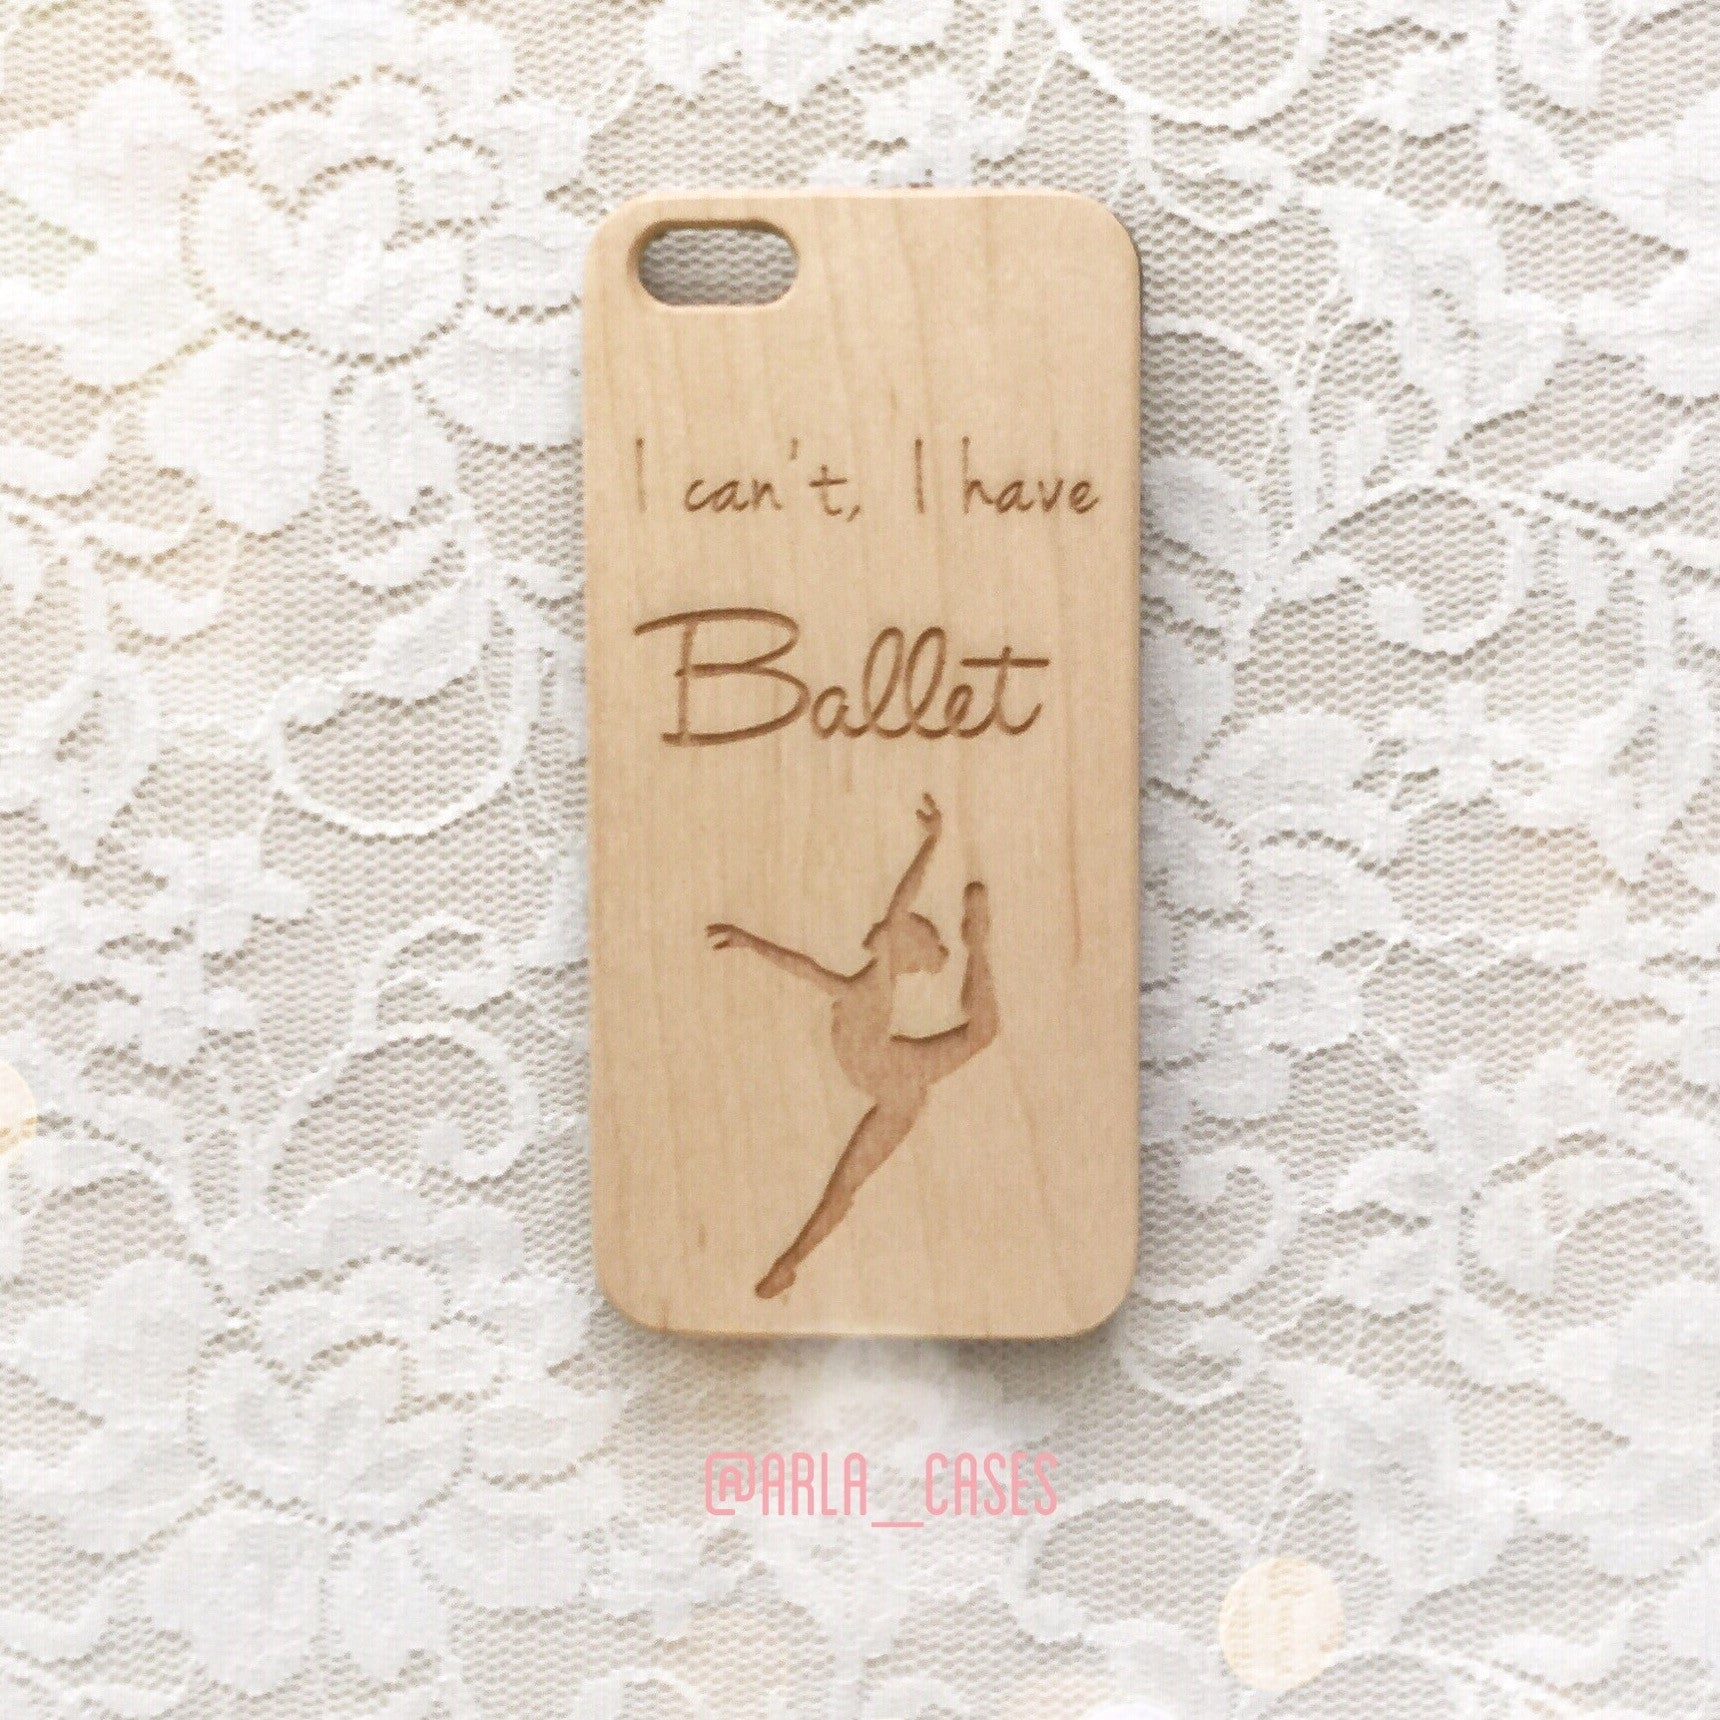 I Cant, I Have Ballet Wood iPhone Case